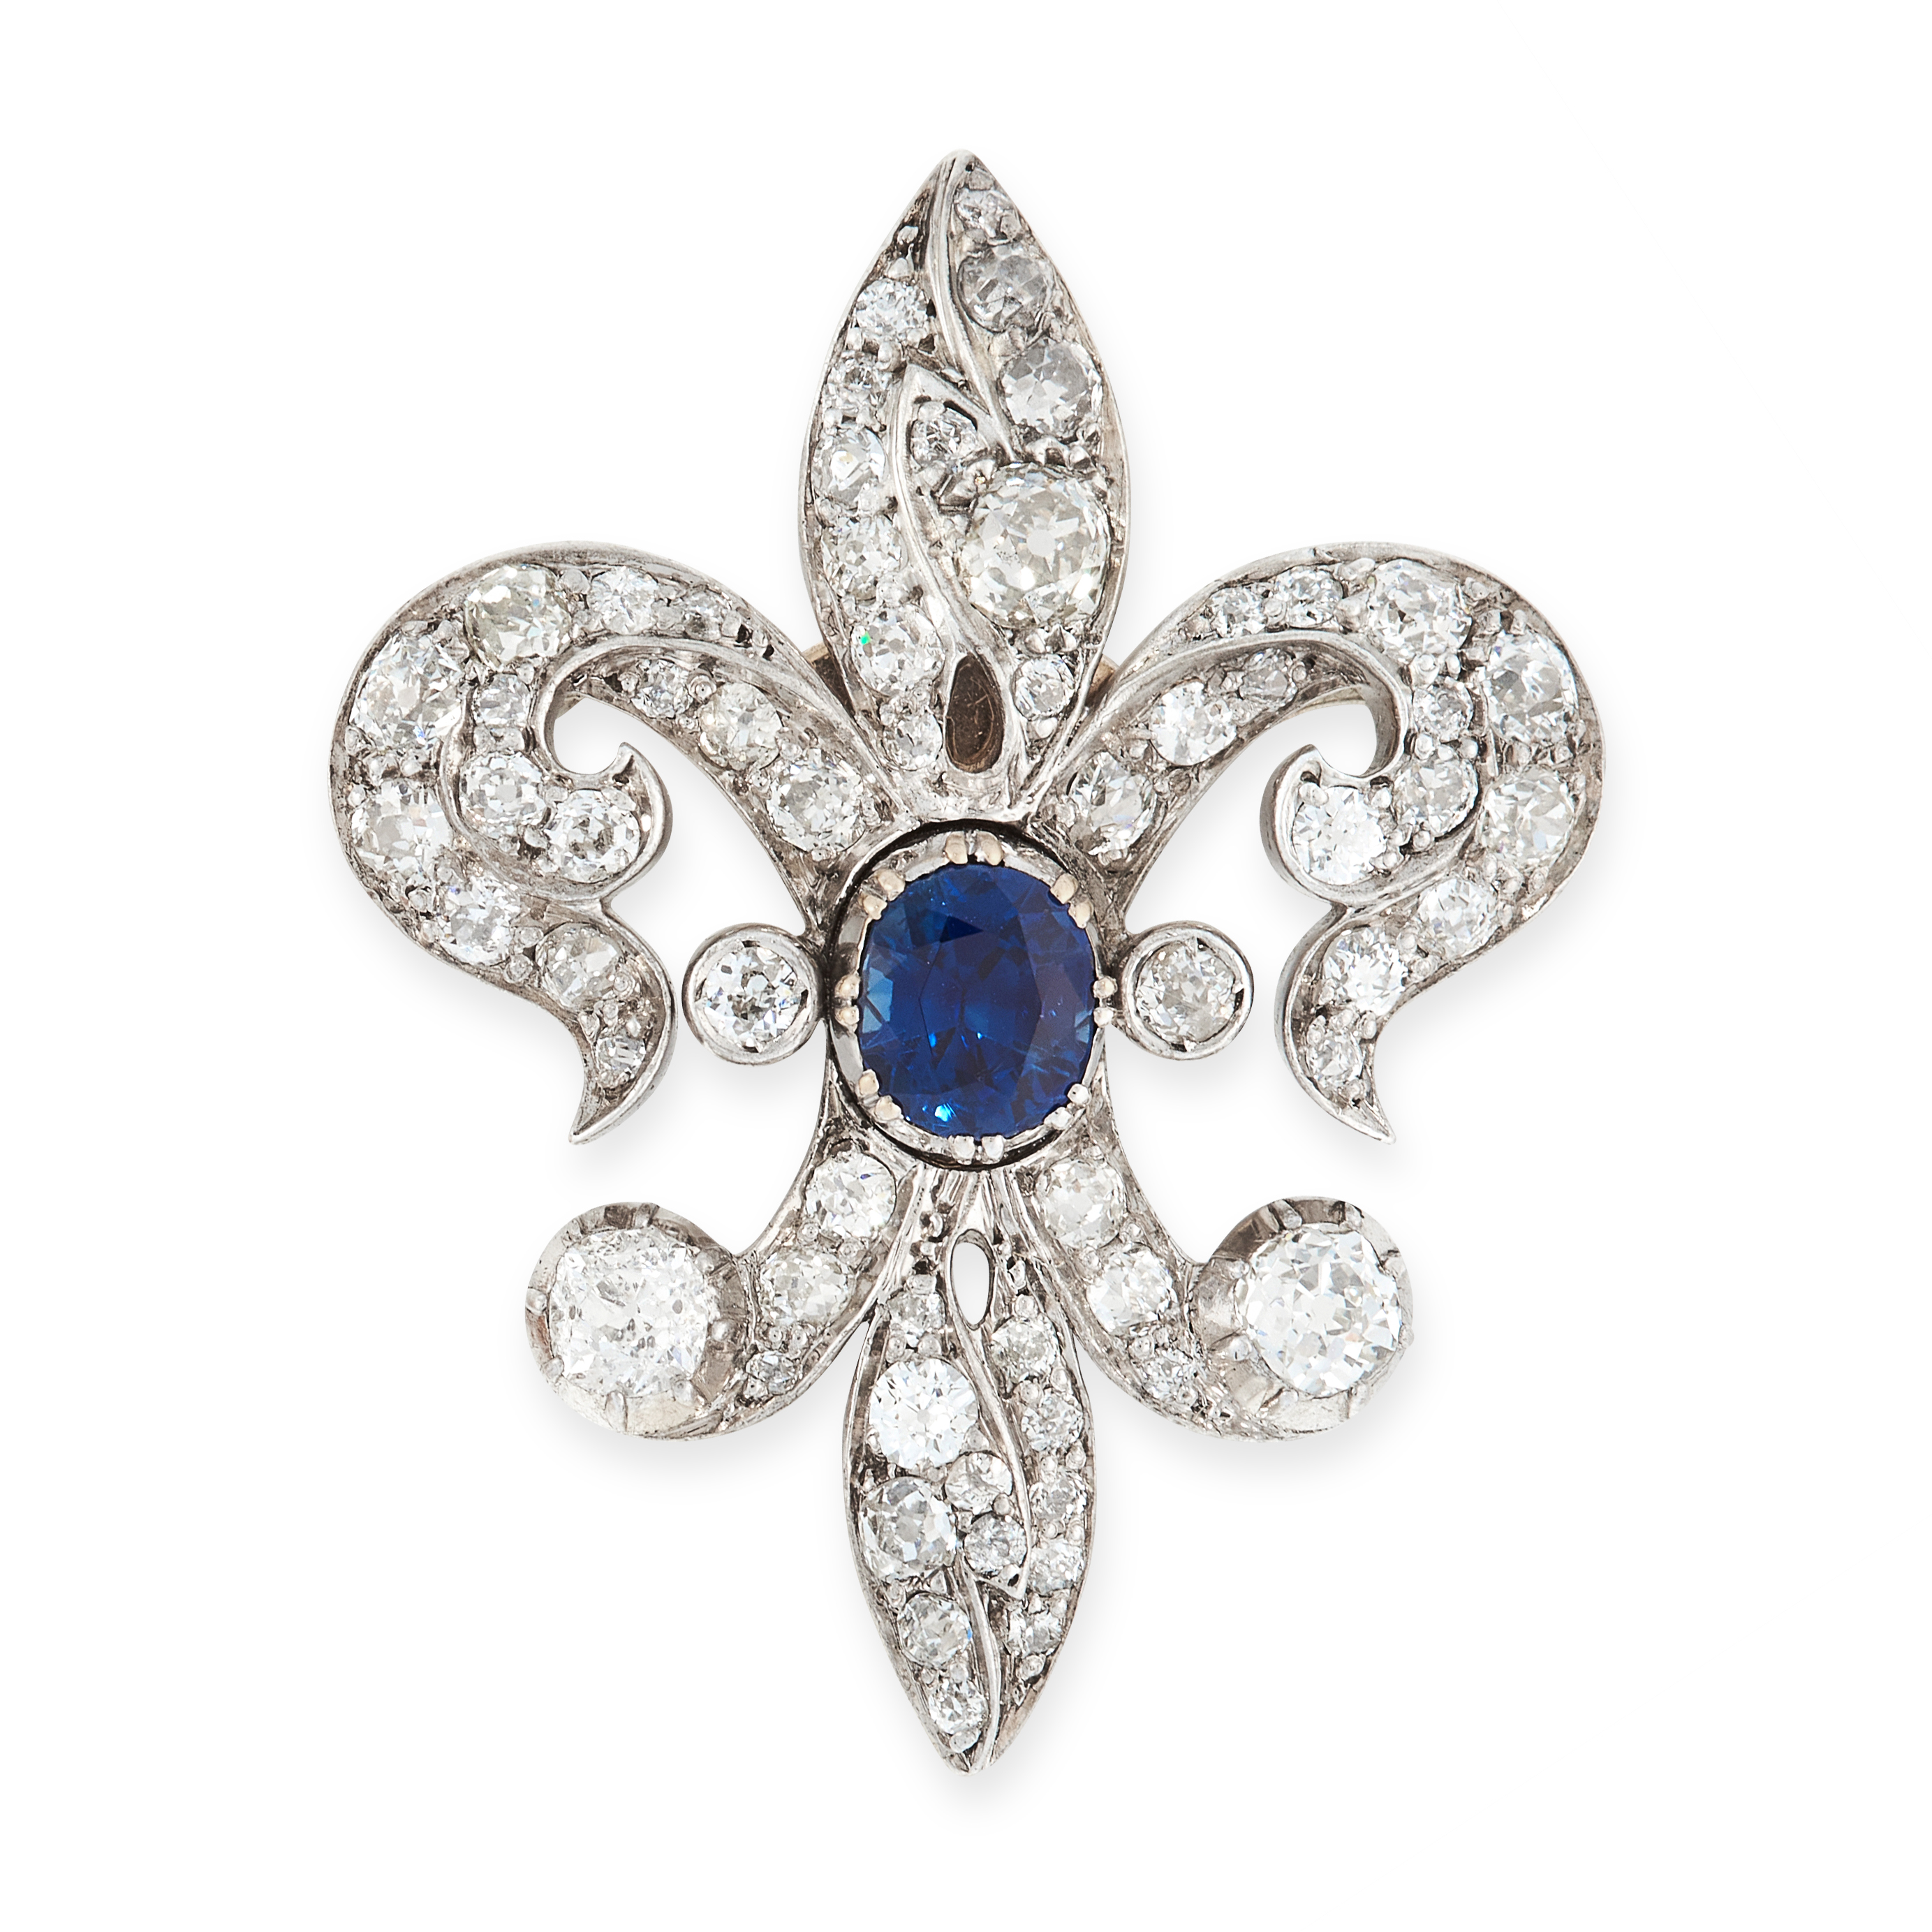 A SAPPHIRE AND DIAMOND FLEUR-DE-LIS BROOCH, EARLY 20TH CENTURY designed as a stylised lily, set with